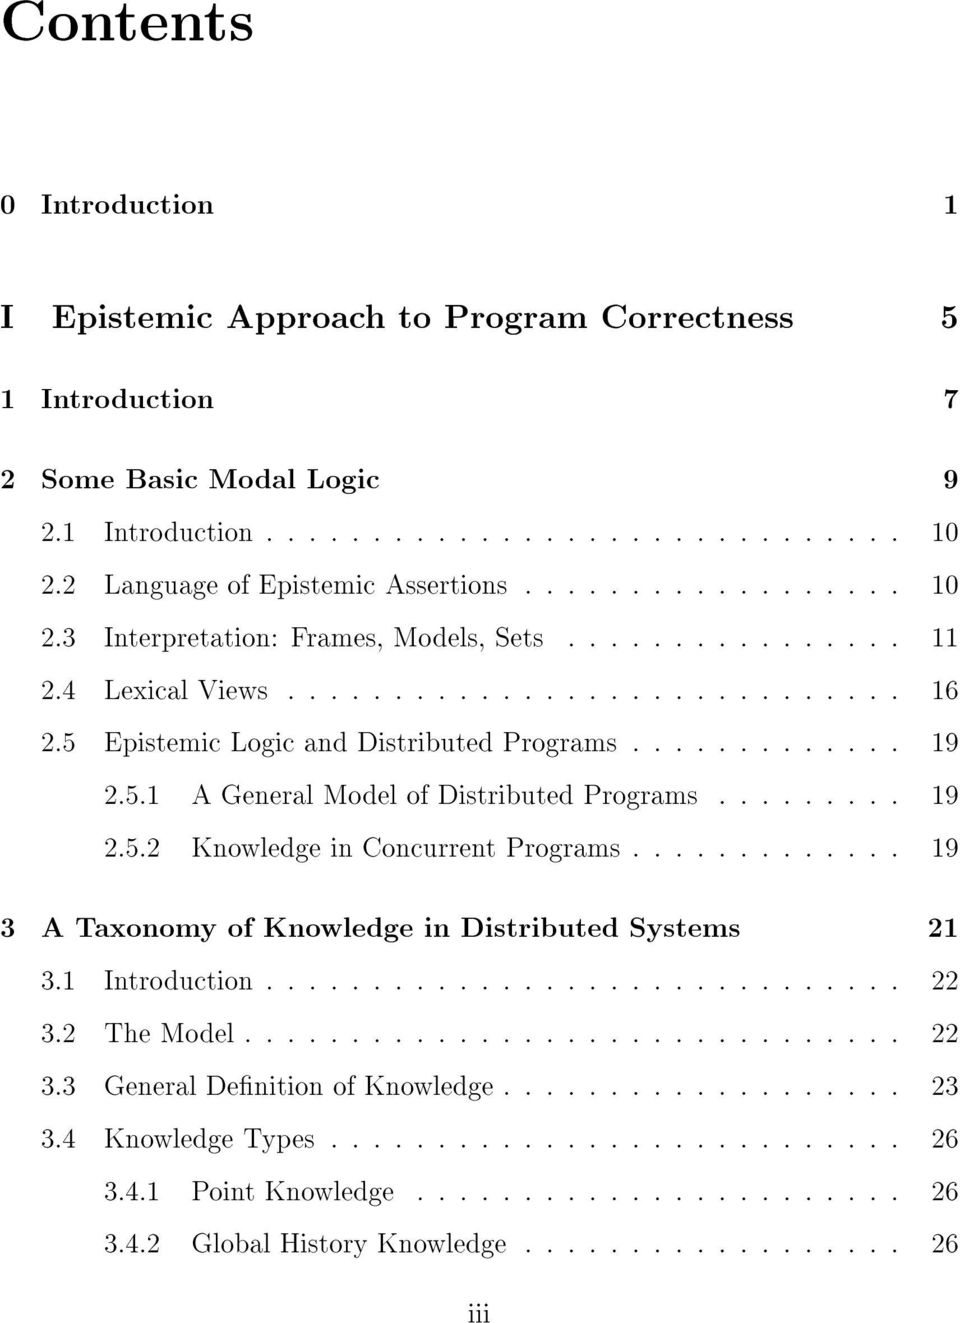 4 Lexical Views : : : : : : : : : : : : : : : : : : : : : : : : : : : : : 16 2.5 Epistemic Logic and Distributed Programs : : : : : : : : : : : : : 19 2.5.1 A General Model of Distributed Programs : : : : : : : : : 19 2.